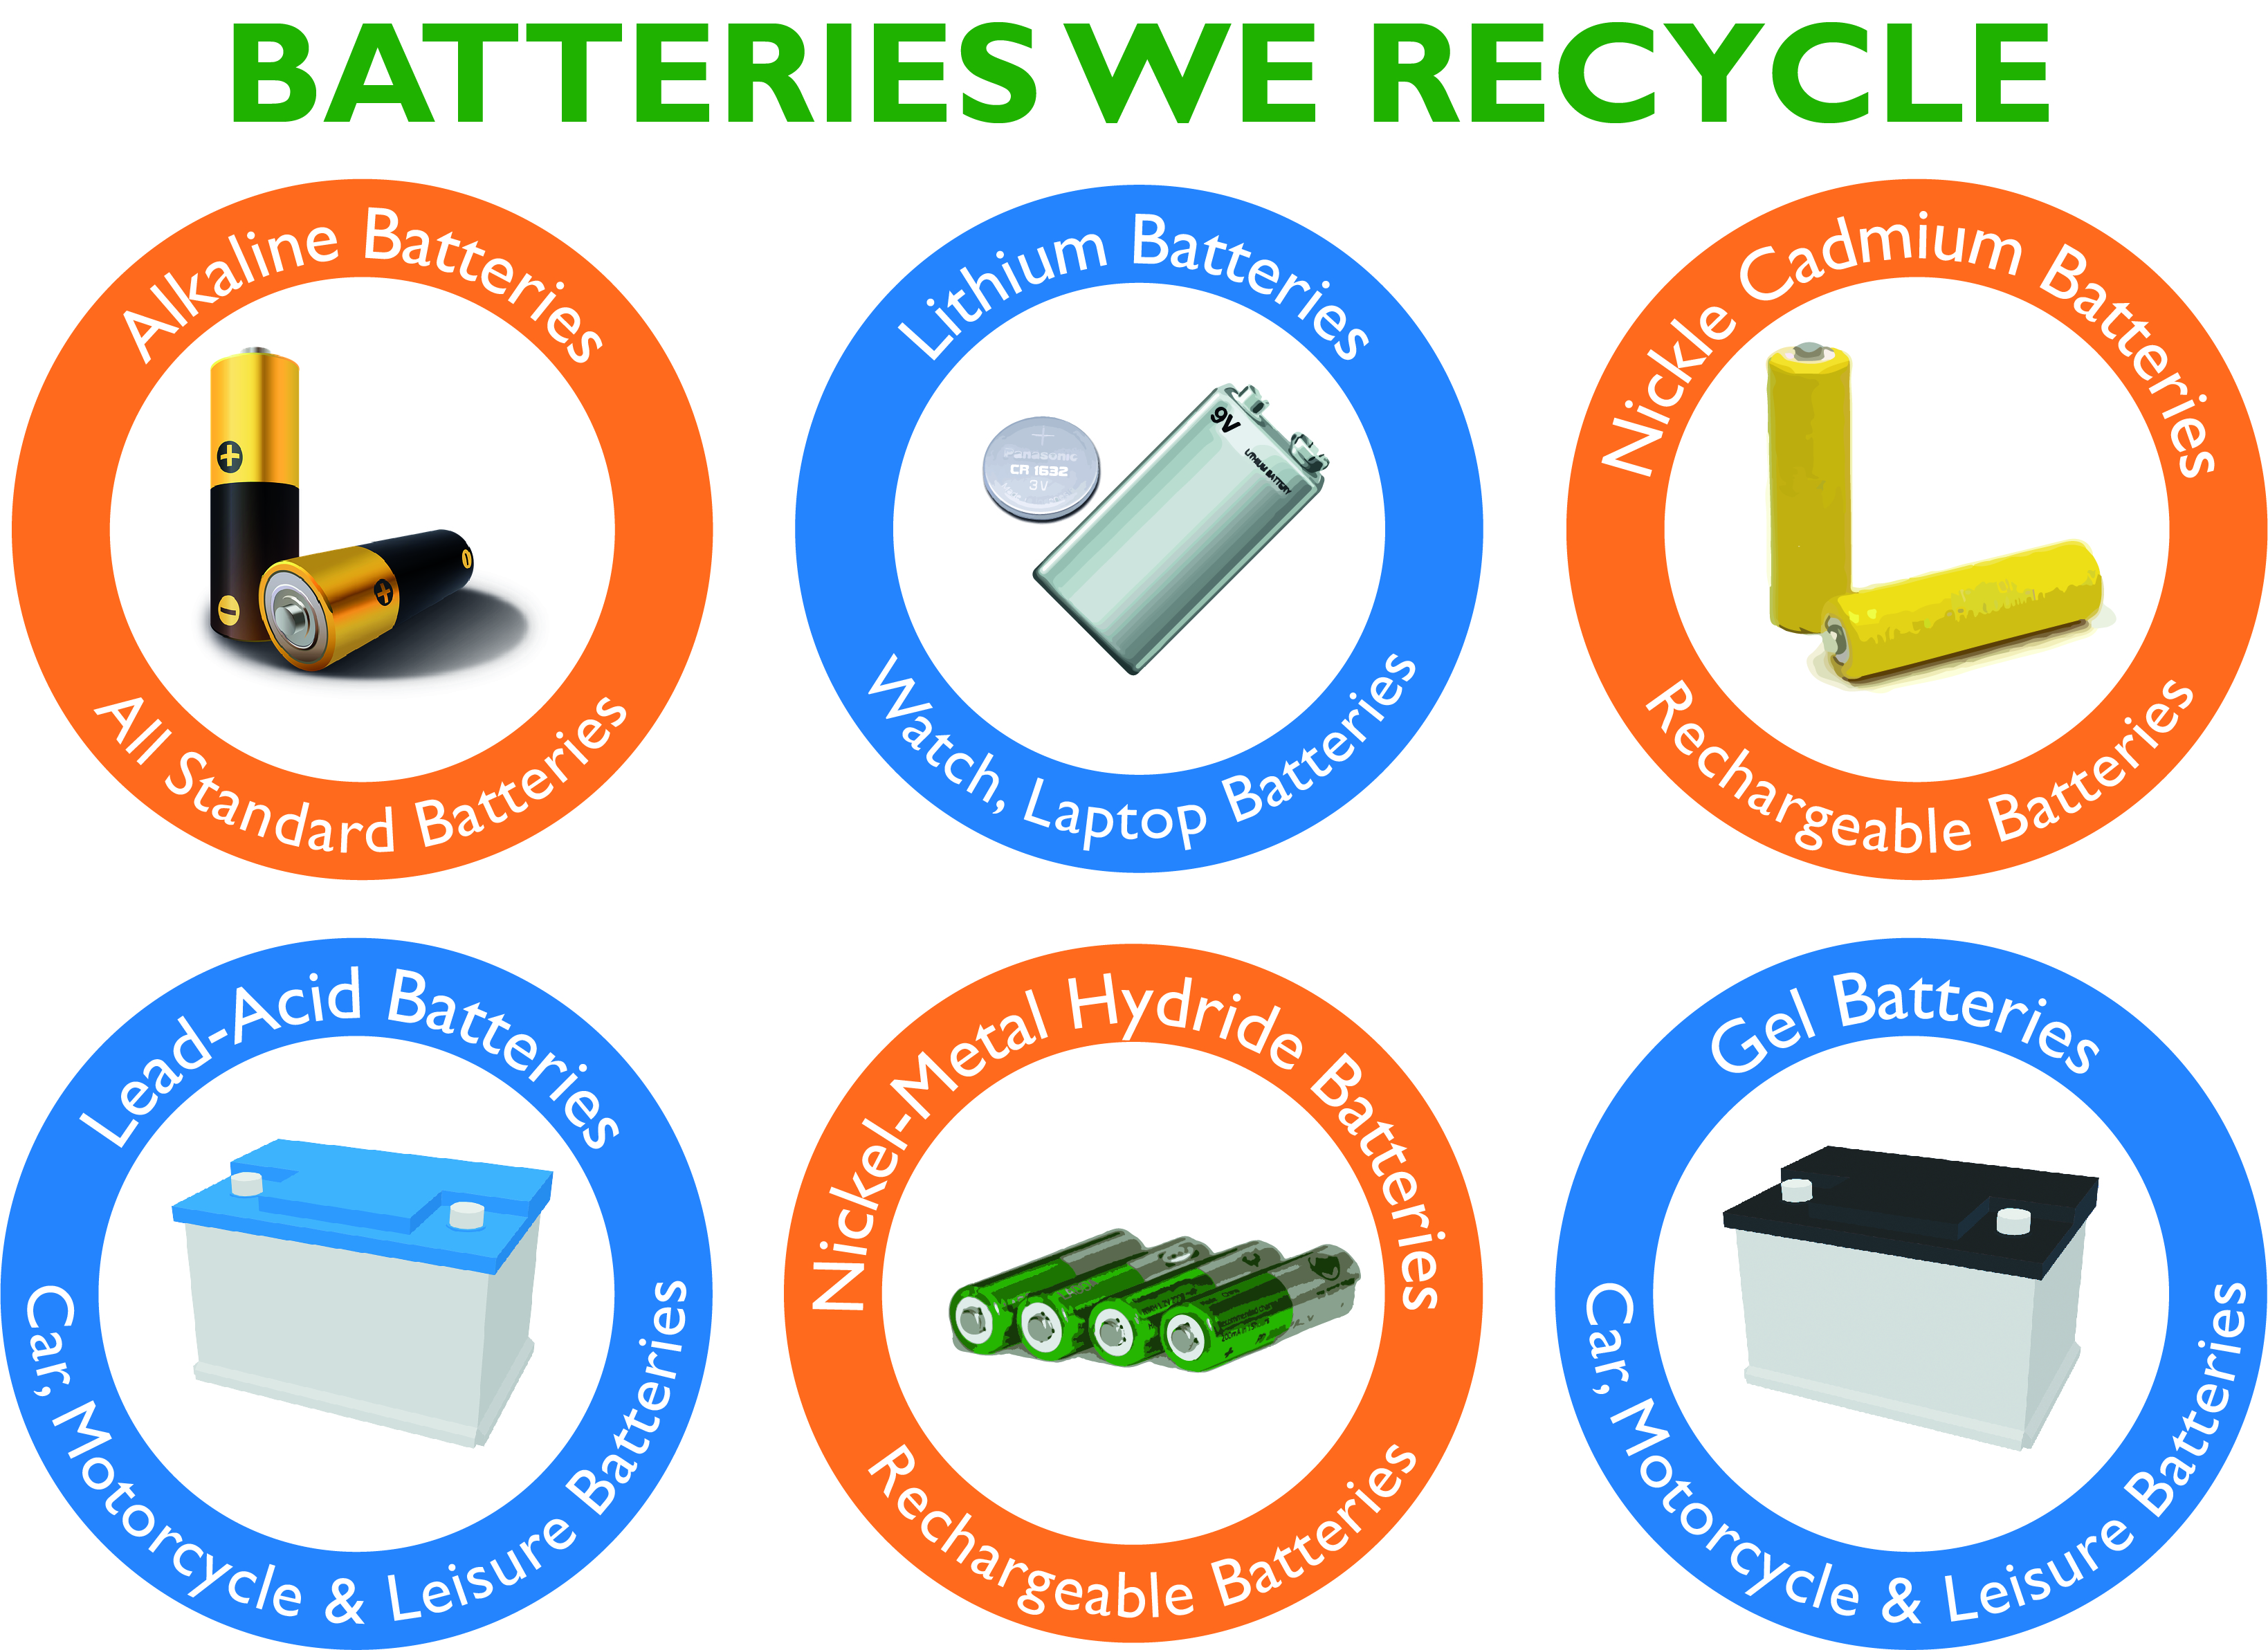 Battery Recycling Collection And Disposal Of Used Or Waste Batteries From County Battery Services